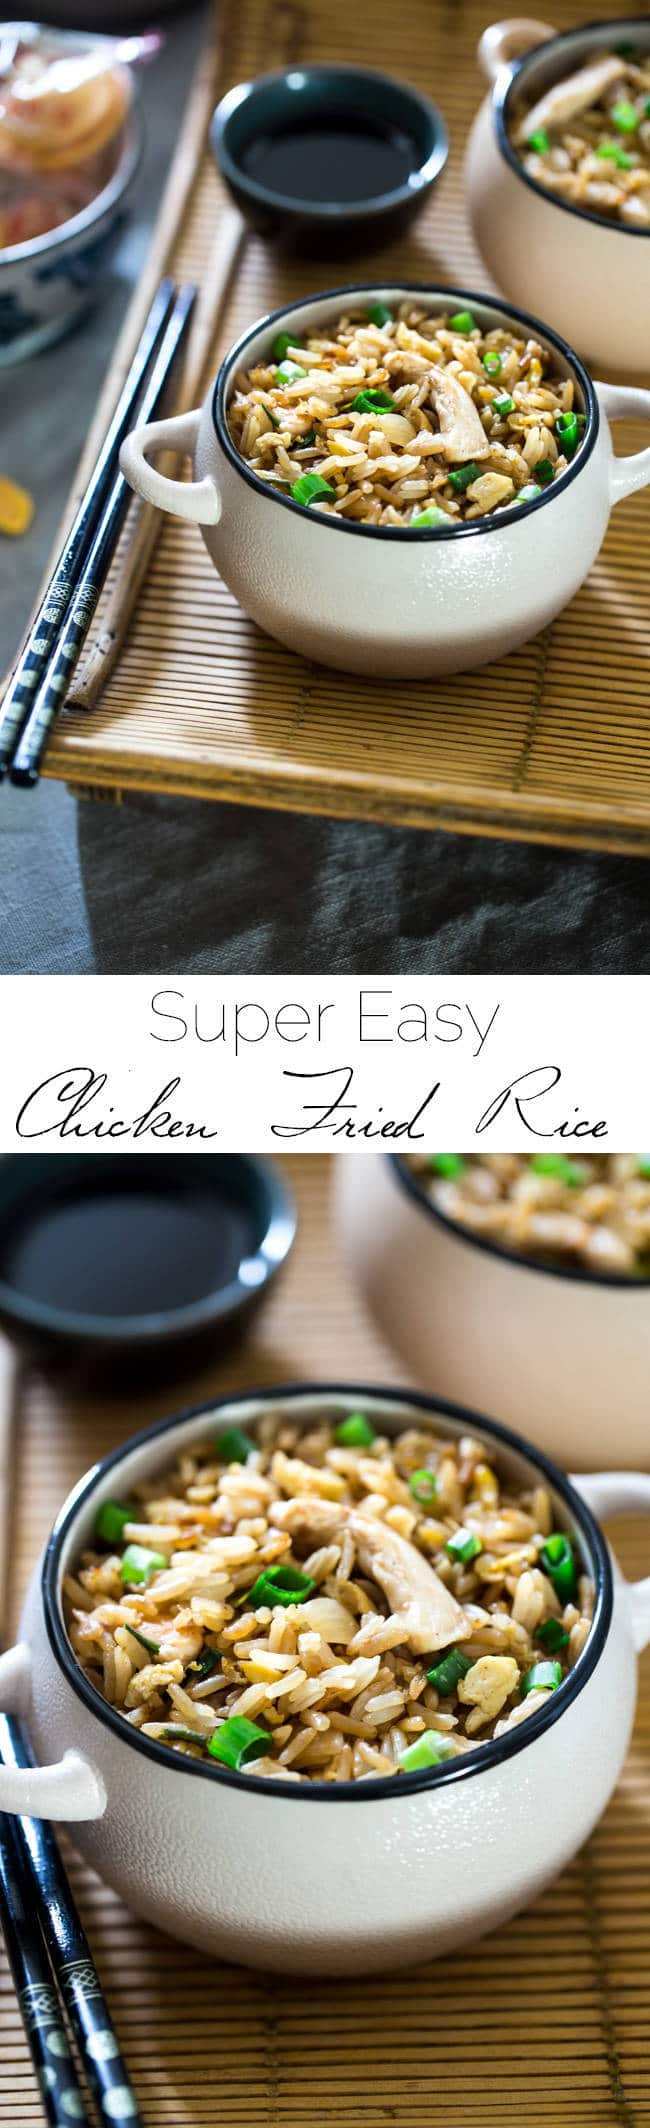 Easy Chicken Fried Rice - This chicken fried rice is better than takeout, and you can eat it without leaving your house! It's a quick, gluten free weeknight dinner that's always a crowd pleaser! | Foodfaithfitness.com | @FoodFaithFit